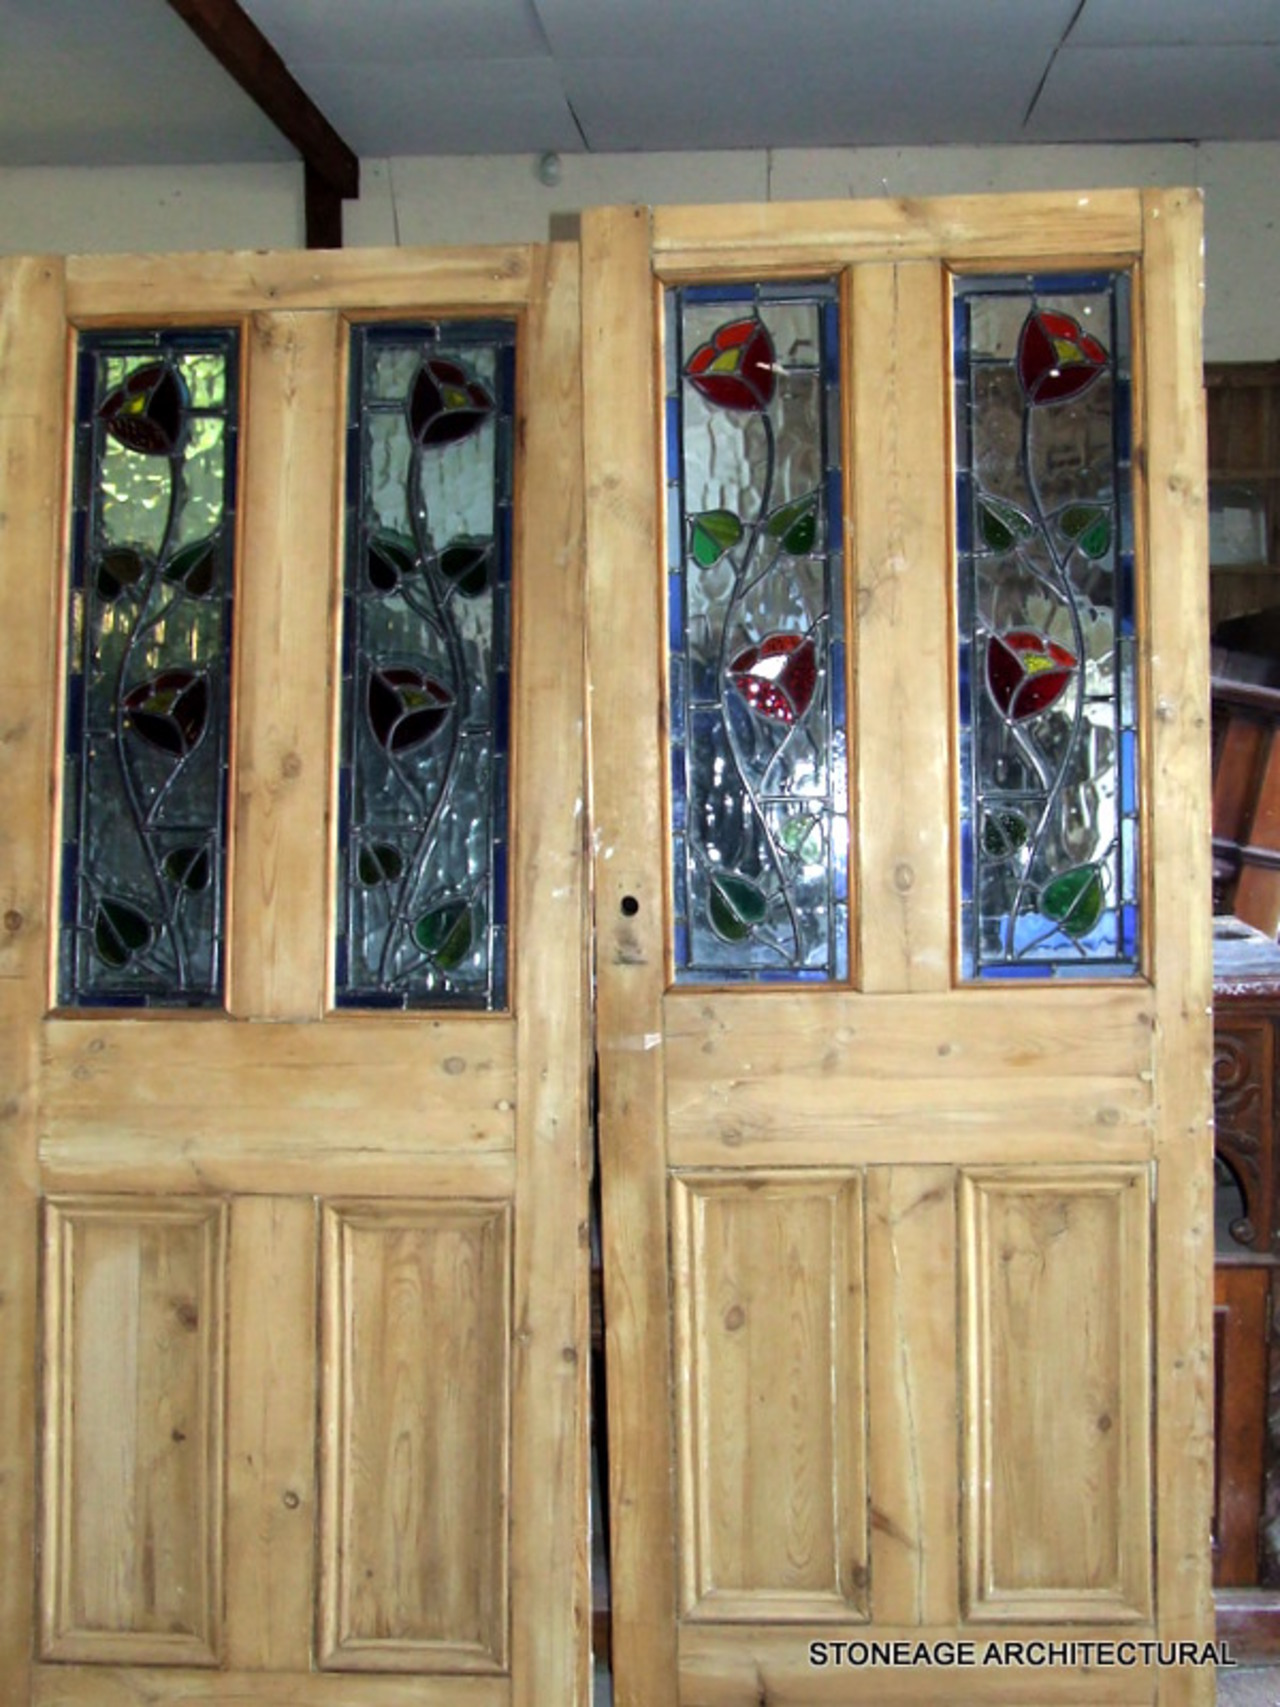 Edwardian Drawing Room: PAIR OF PERIOD INTERIOR STAINED GLASS DOORS